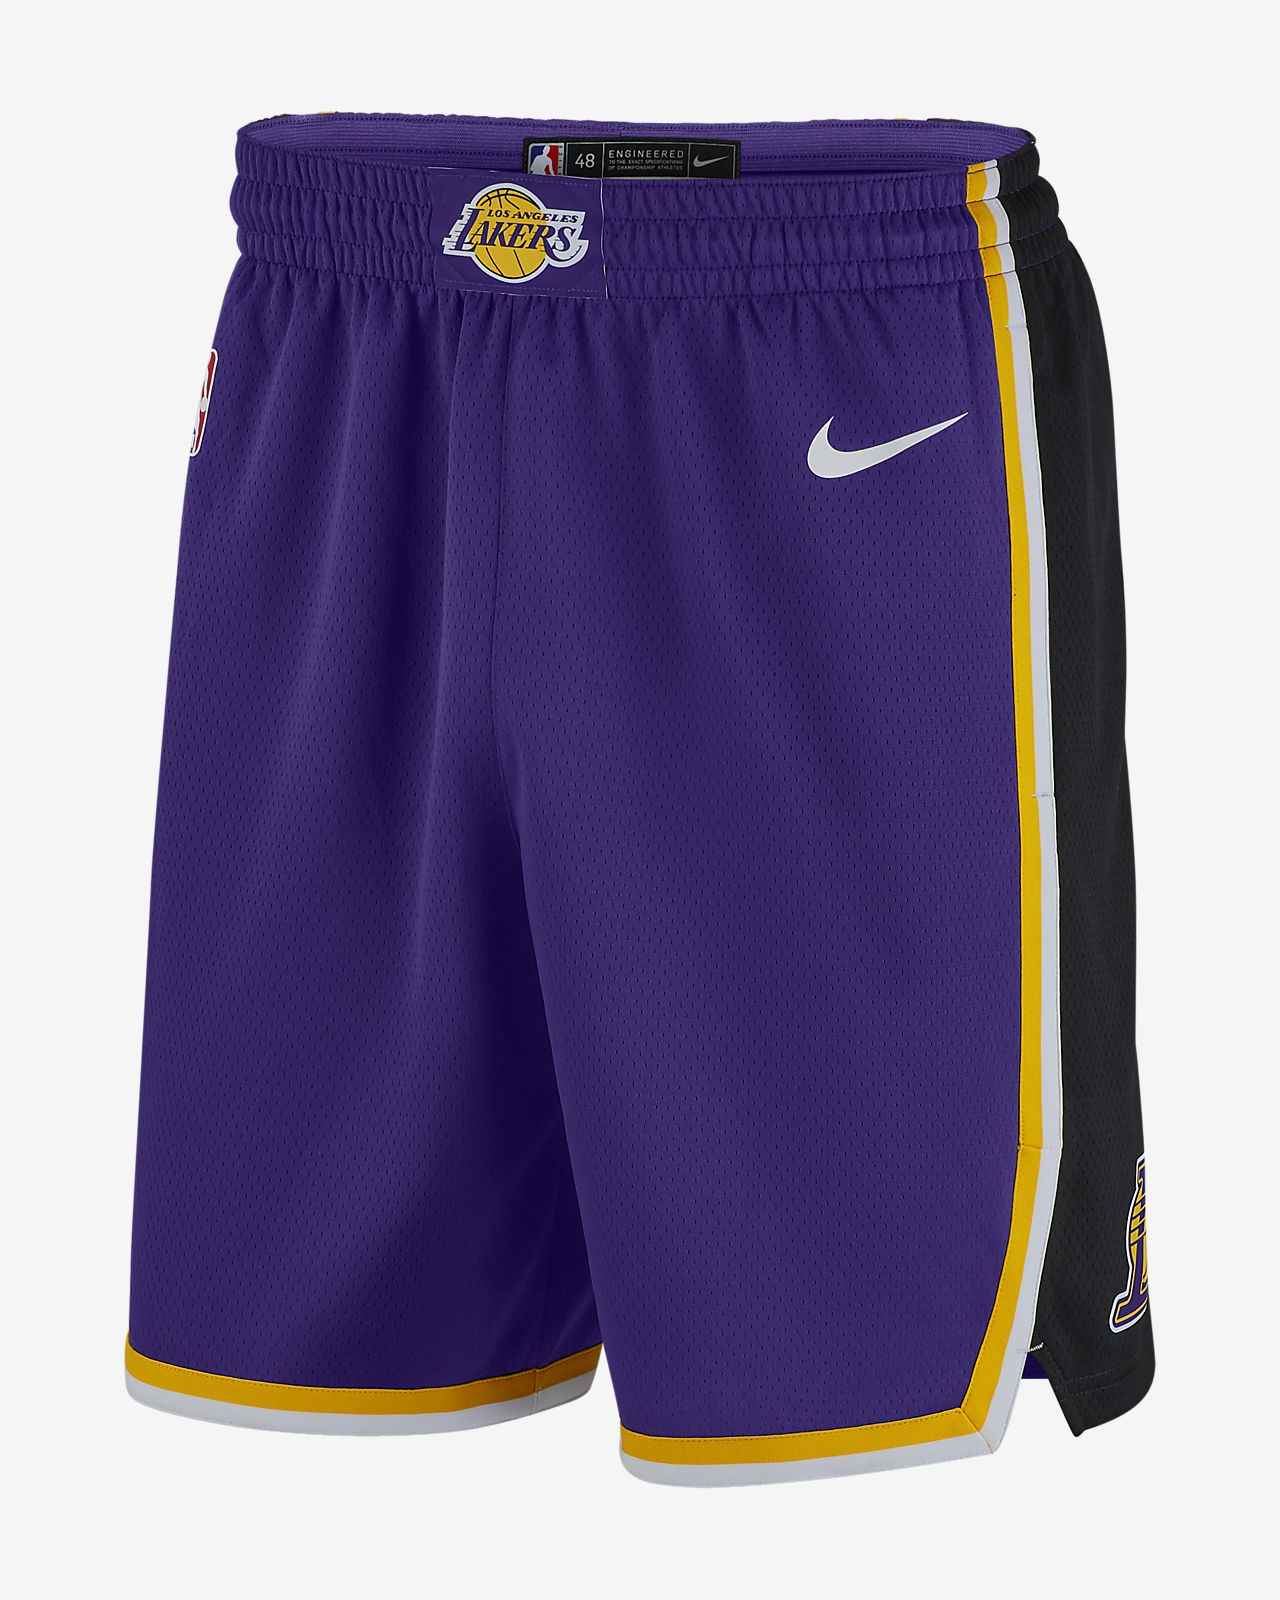 Los Angeles Lakers Statement Edition Swingman Men's Nike NBA Shorts